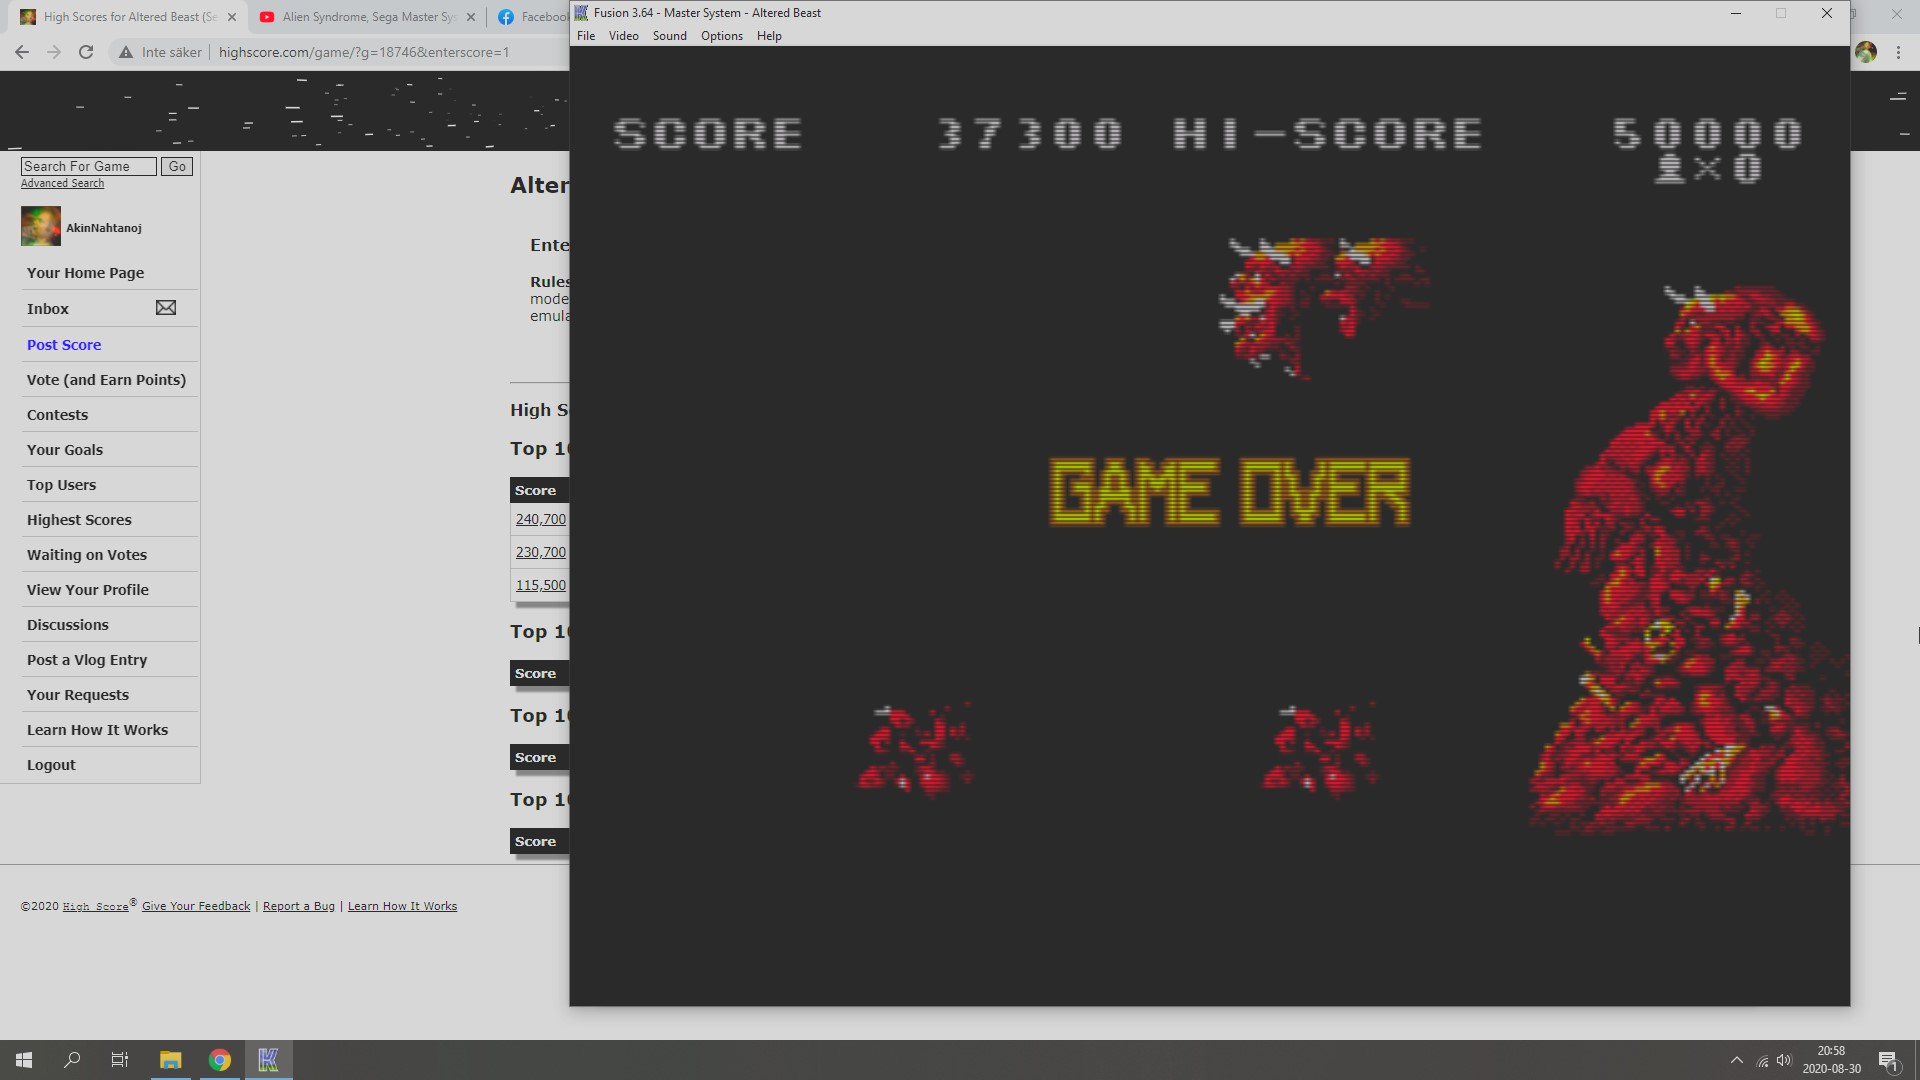 Altered Beast 37,300 points